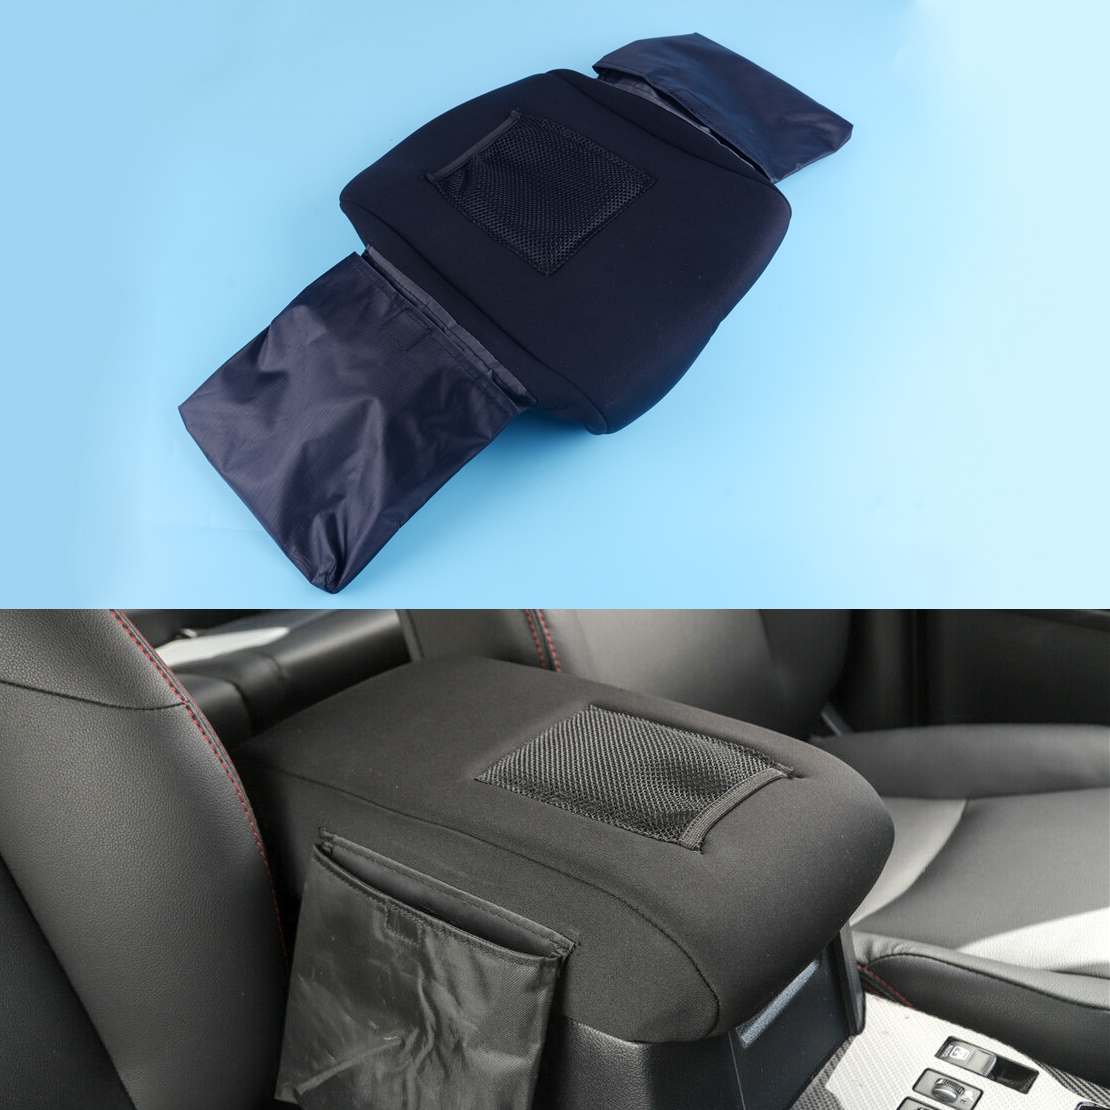 DWCX Black Neoprene Center Console Armrest Lid Cushion Cover w/ 2 Stroage Bag Pocket fit for <font><b>Toyota</b></font> <font><b>4Runner</b></font> 2017 <font><b>2018</b></font> 2019 2020 image